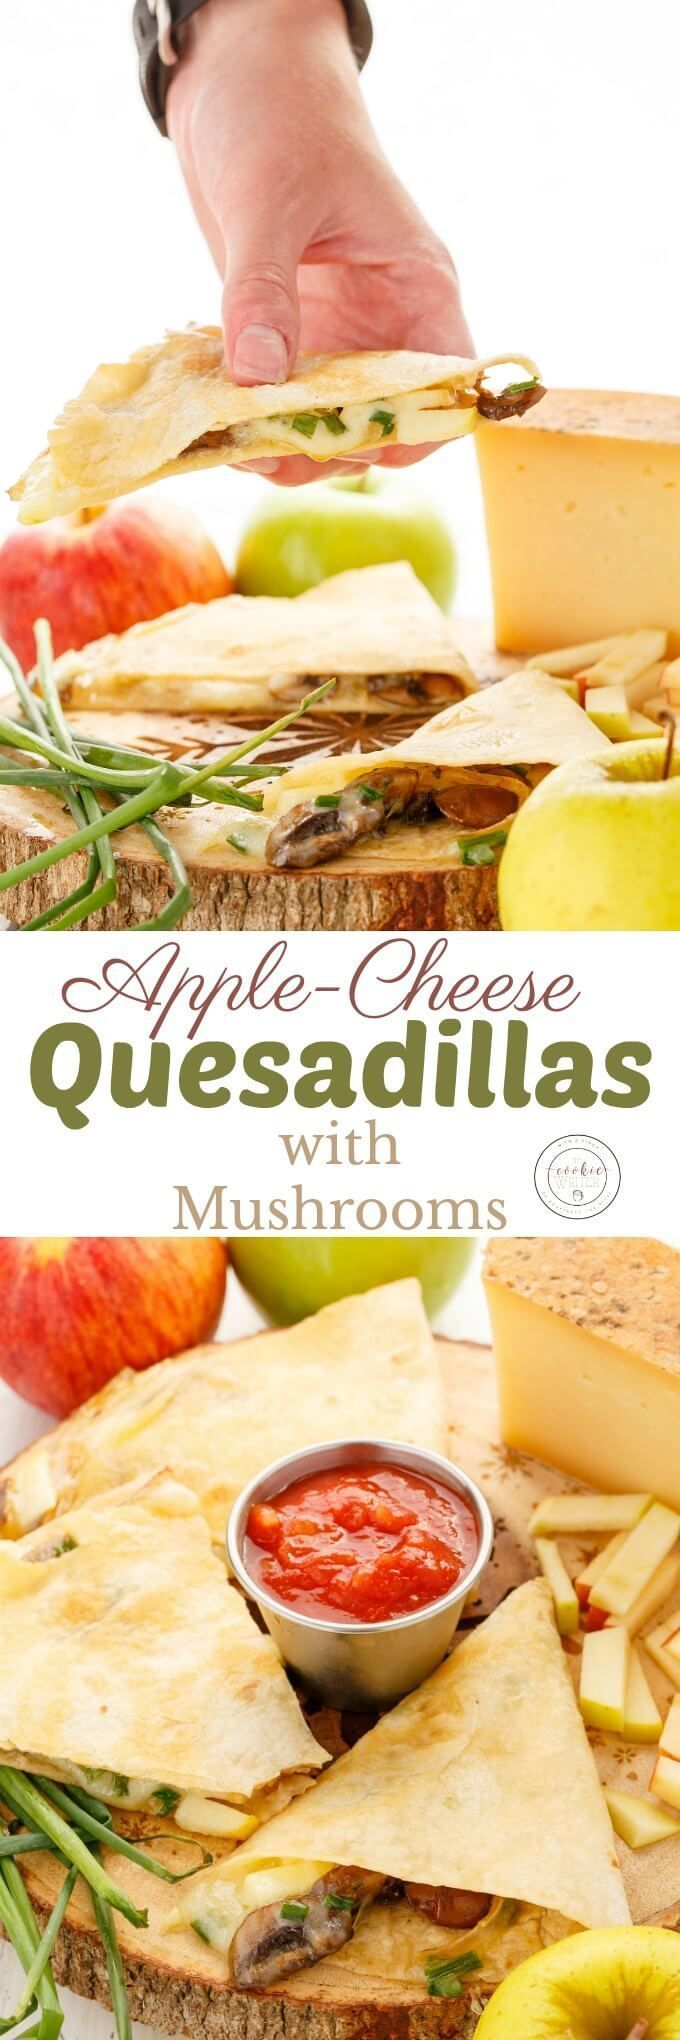 Apple-Cheese Quesadillas with Mushrooms | http://thecookiewriter.com | @thecookiewriter | YUM! These should also work fine on most good contact grills.